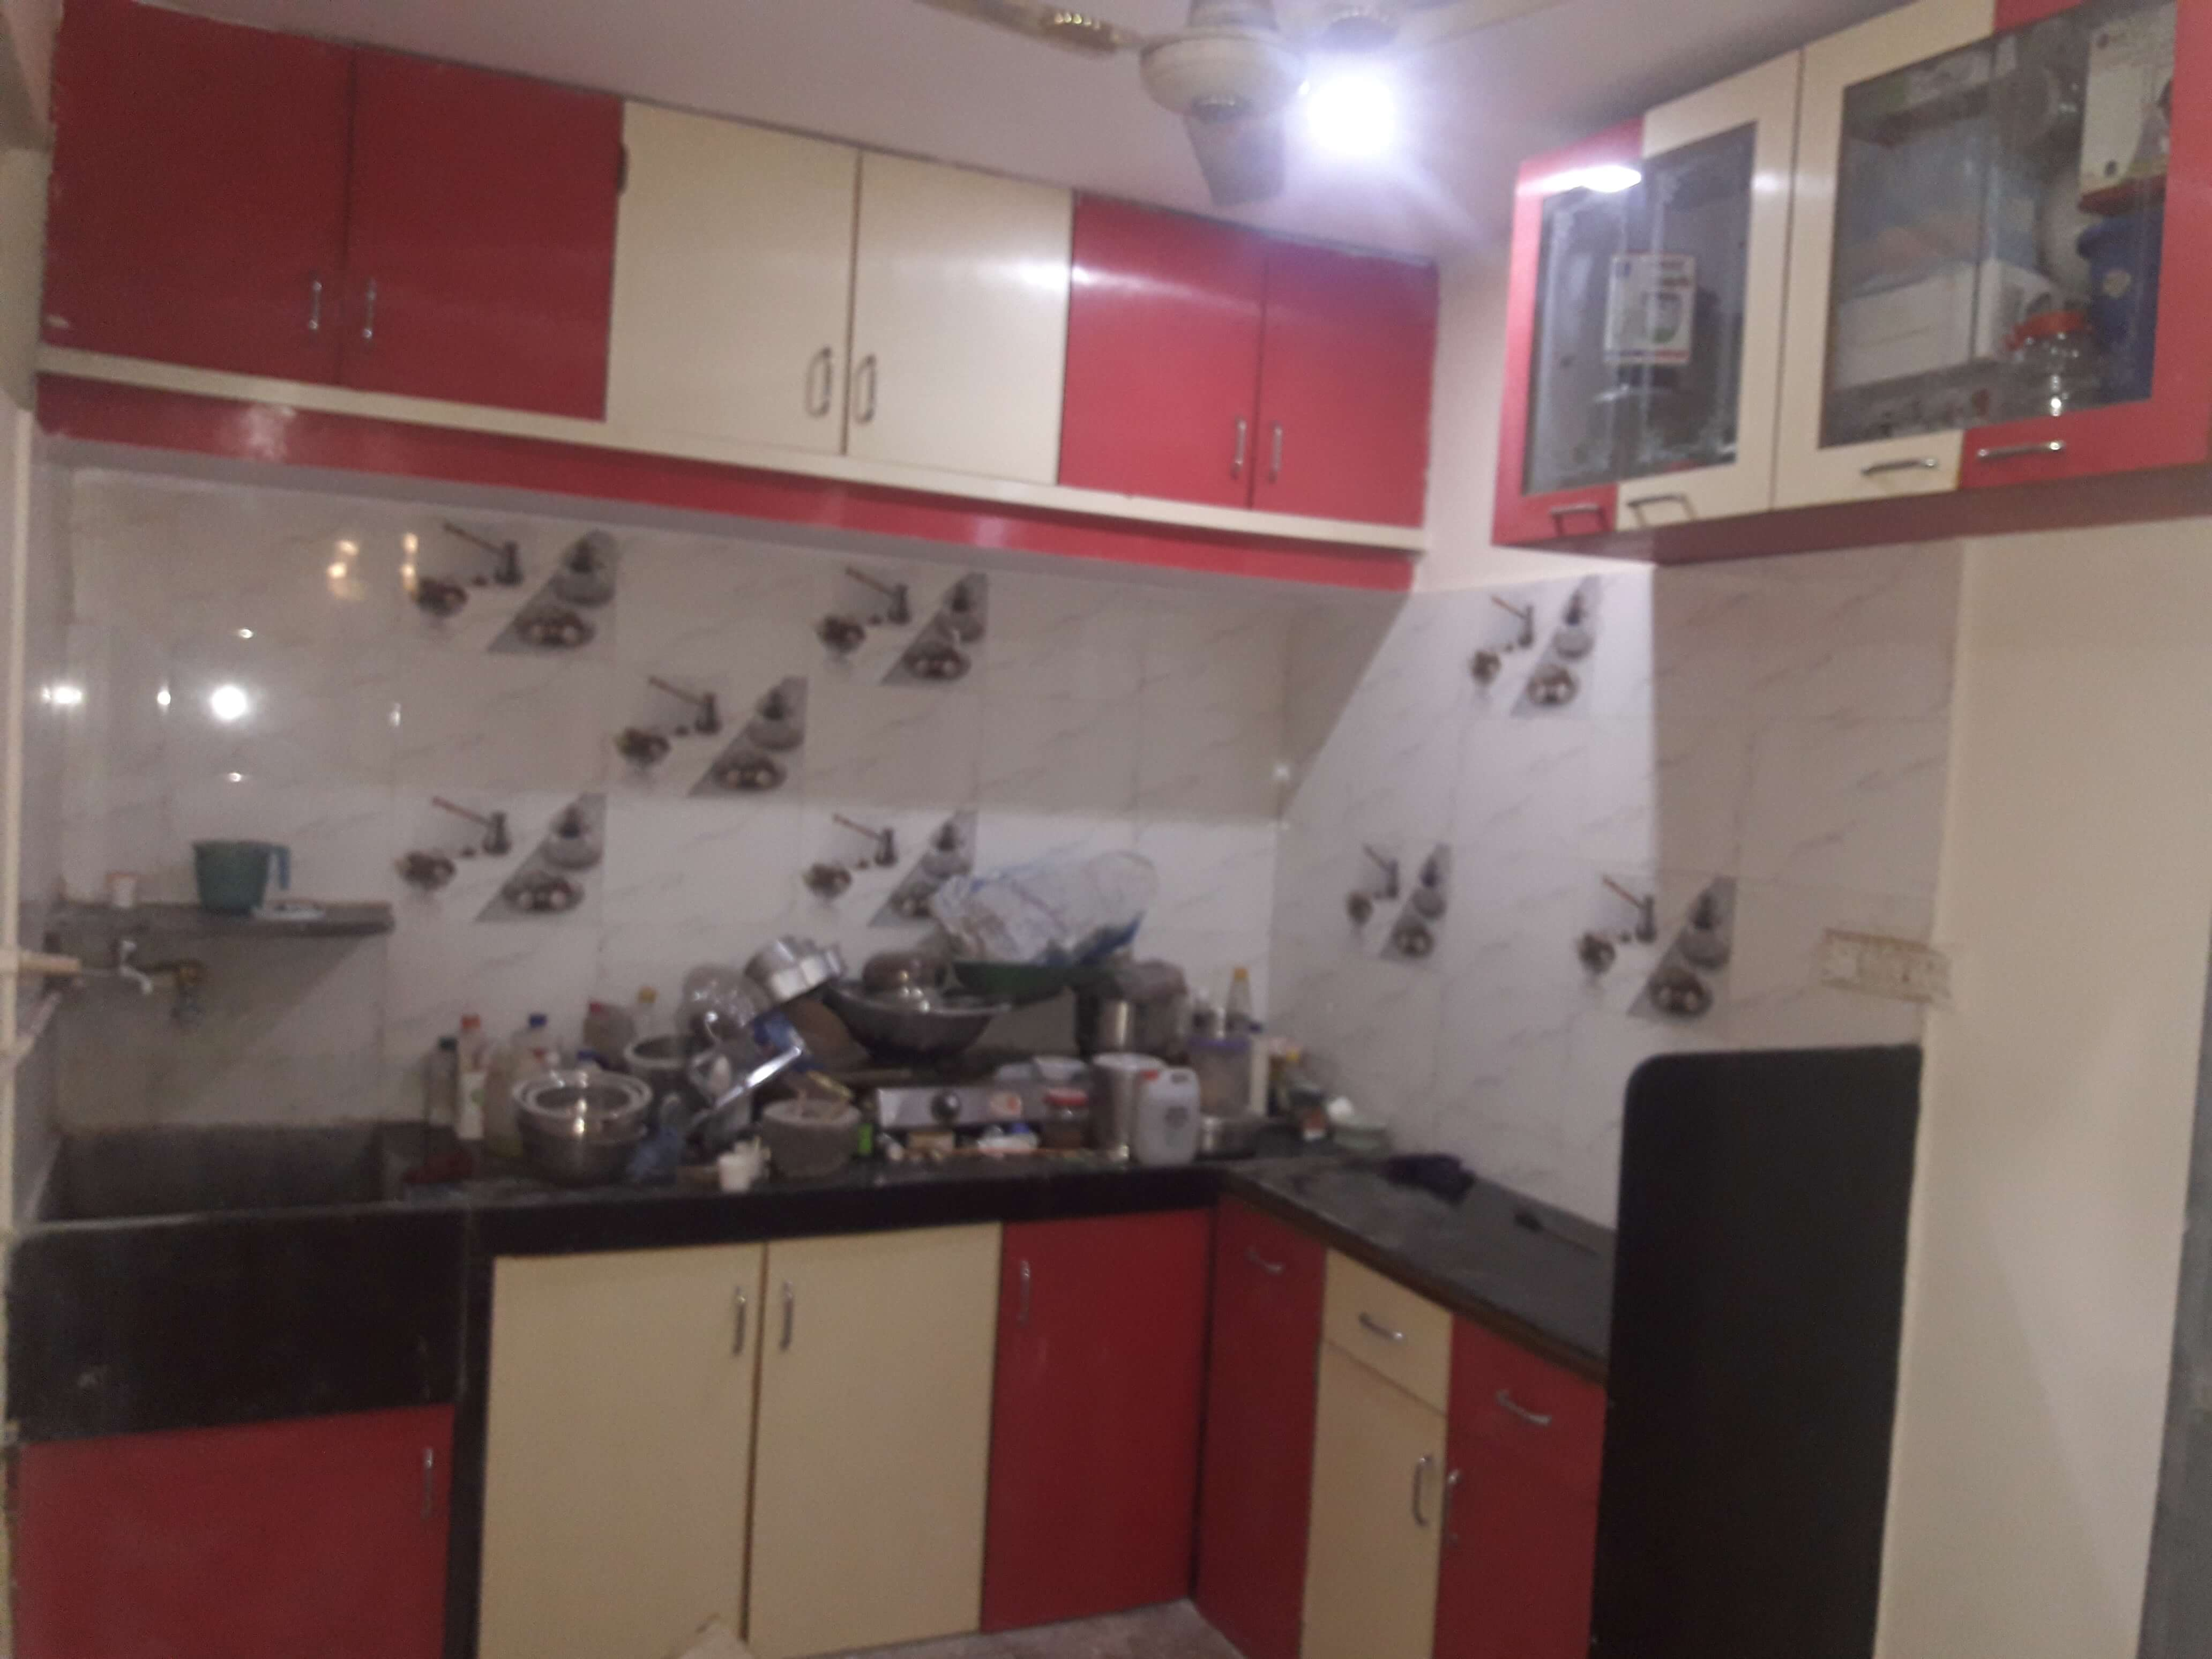 545 Sq Feet 1 Bhk Flat In Shivsai Complex At 31 Lacs For Sale Id 4224 Anand Nagar Pune